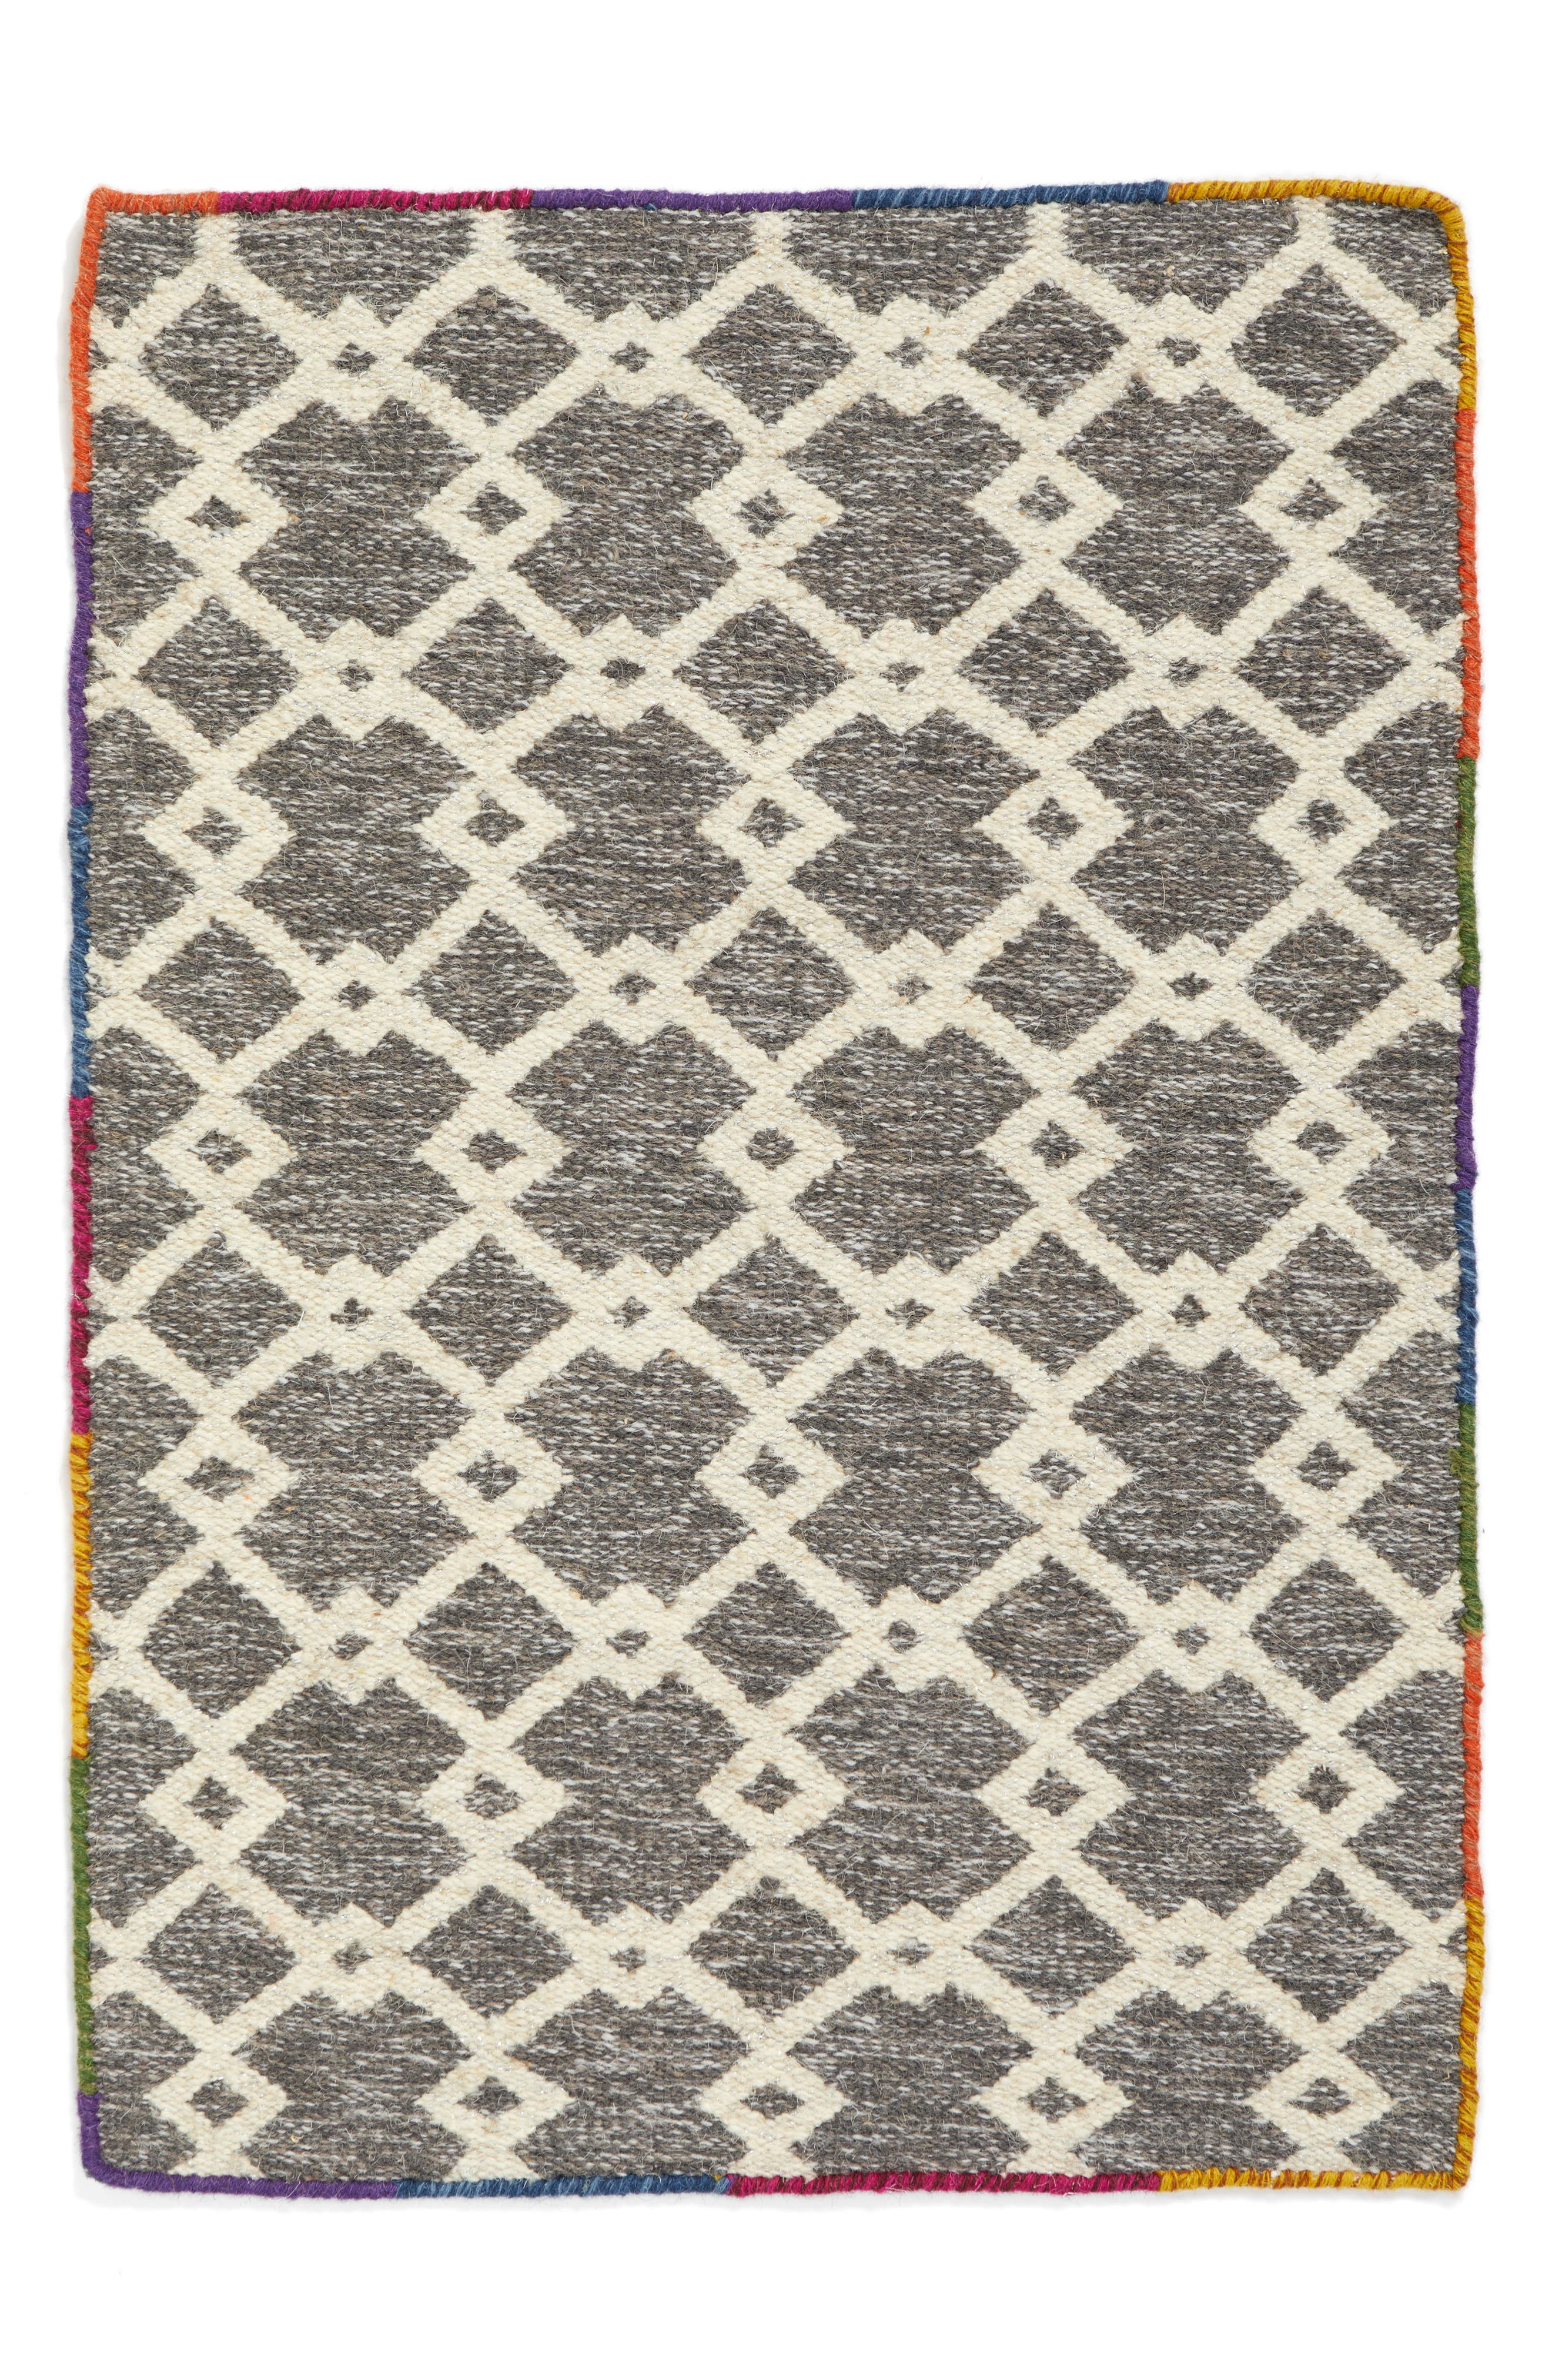 Nordstrom at Home Lattice Handwoven Area Rug